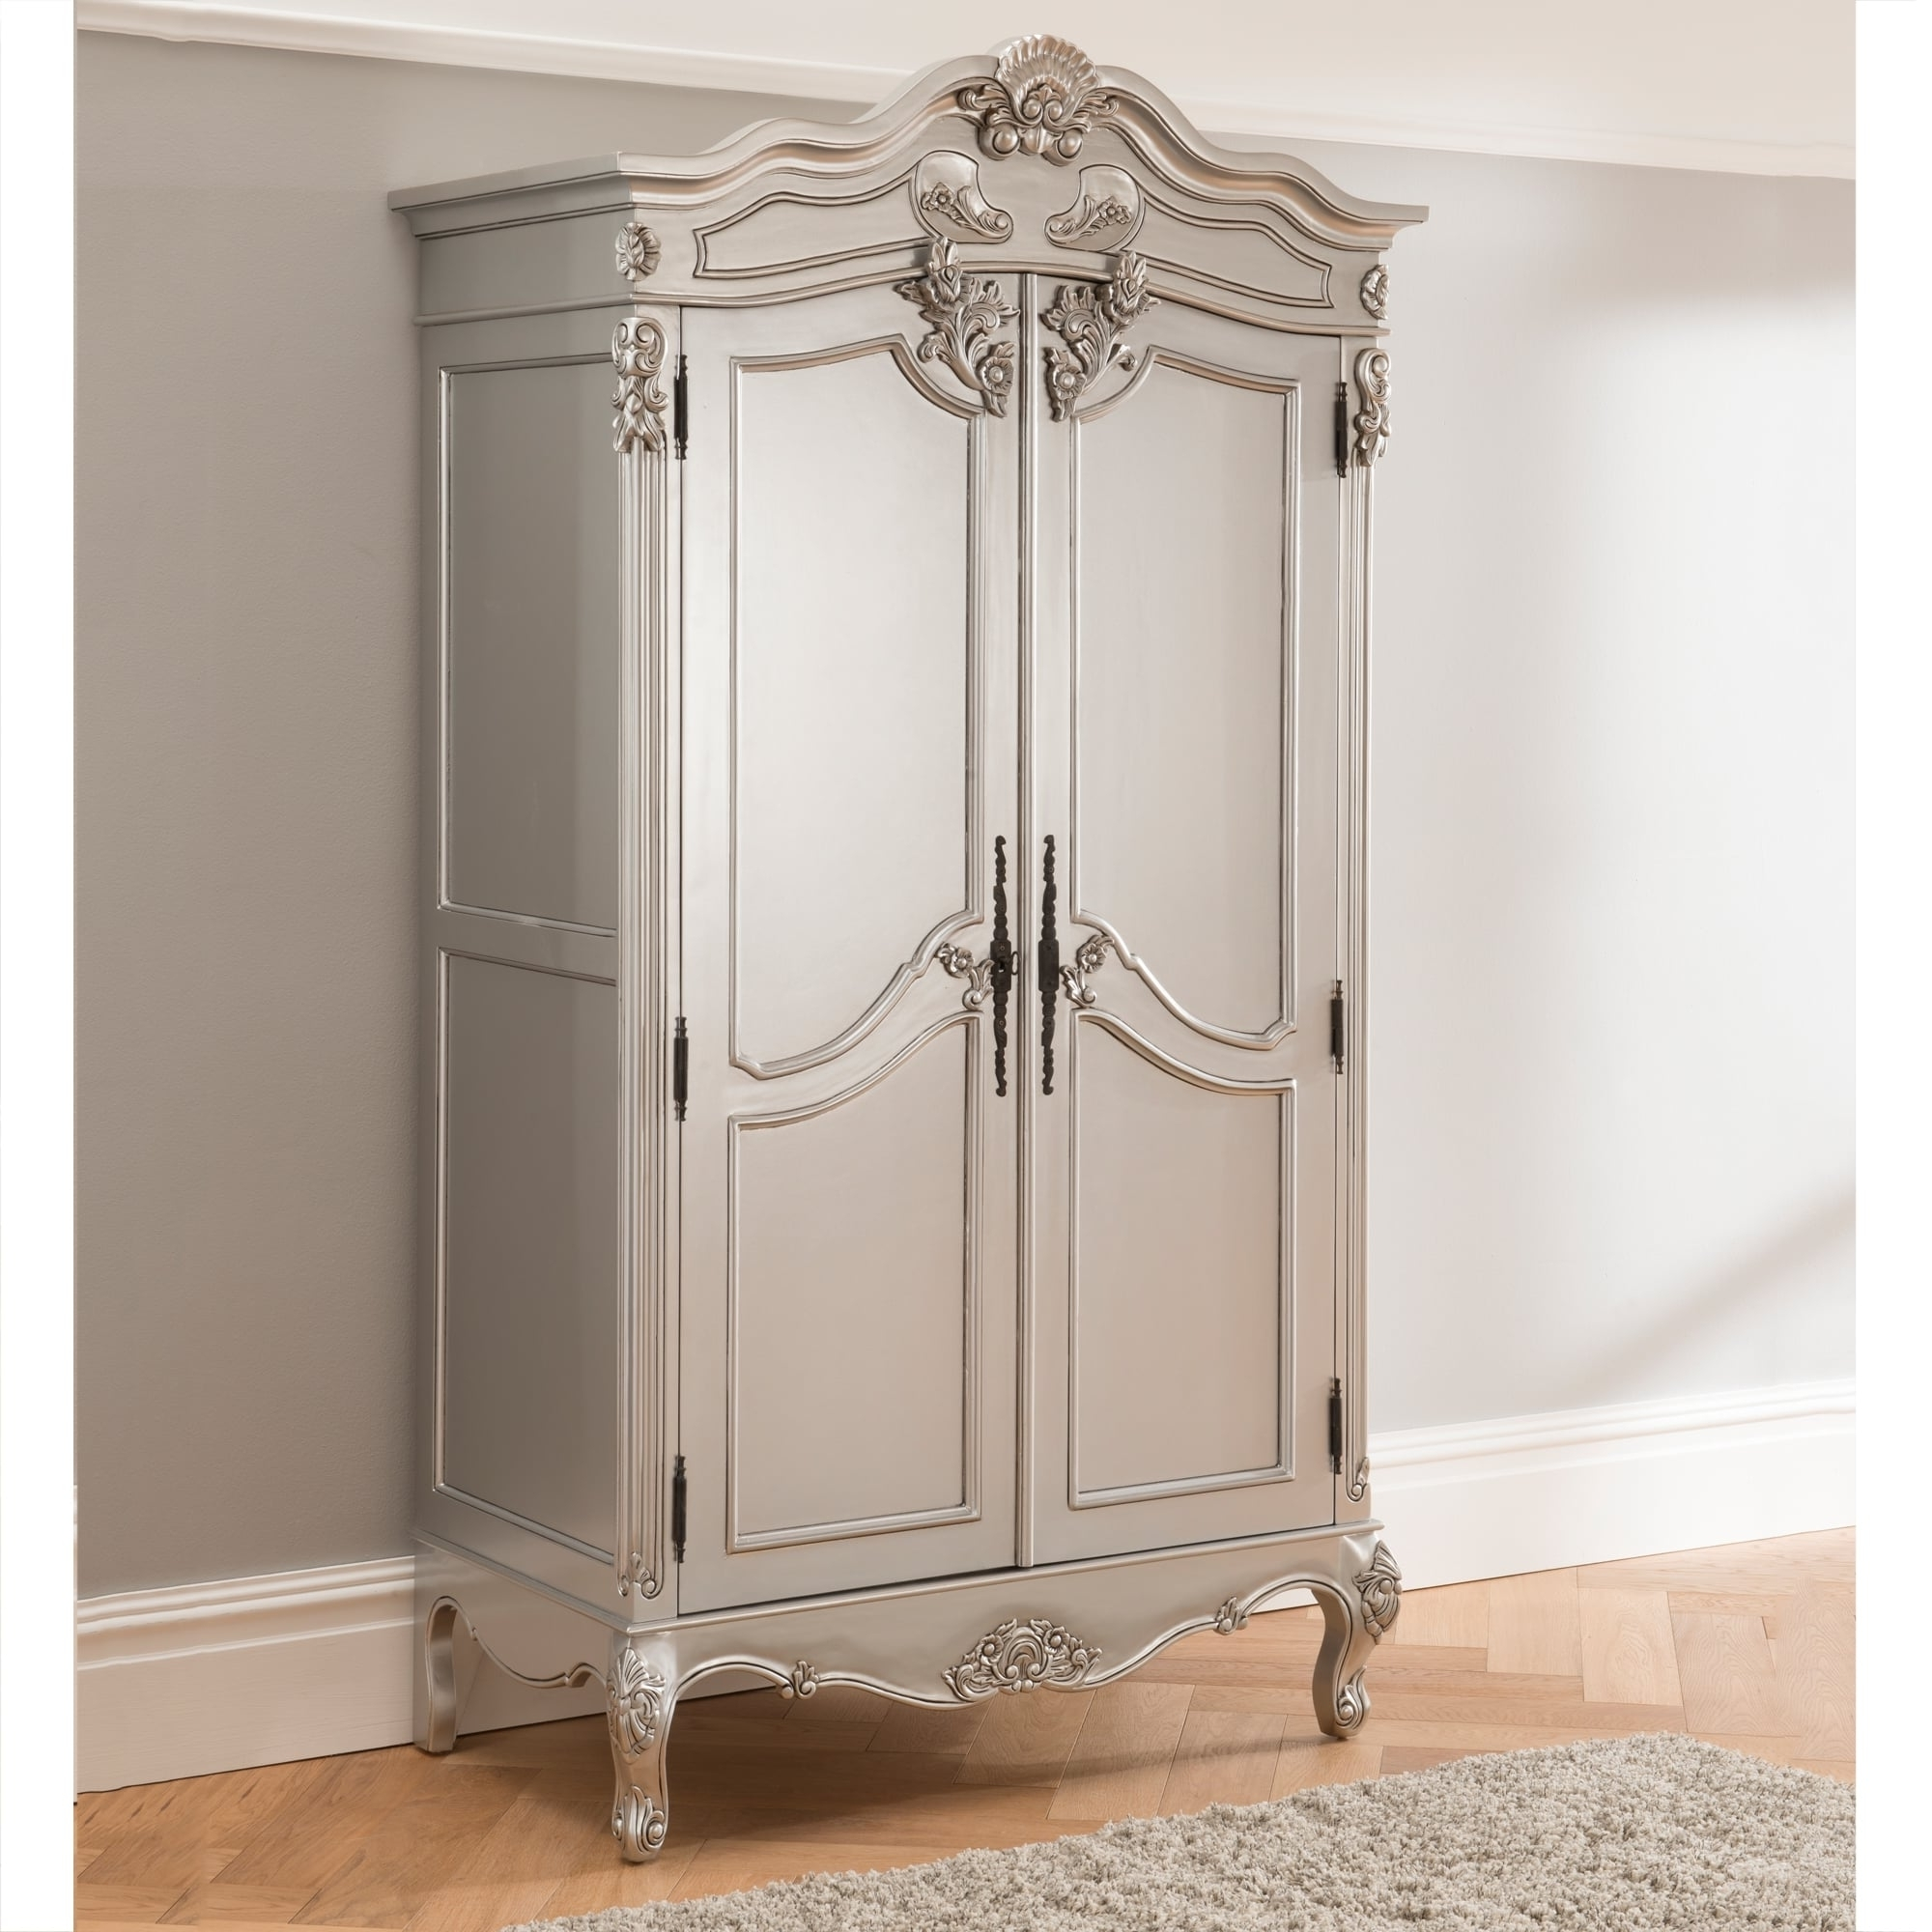 French Wardrobe For Simple Outfits – Bellissimainteriors Intended For Most Current Vintage French Wardrobes (View 4 of 15)